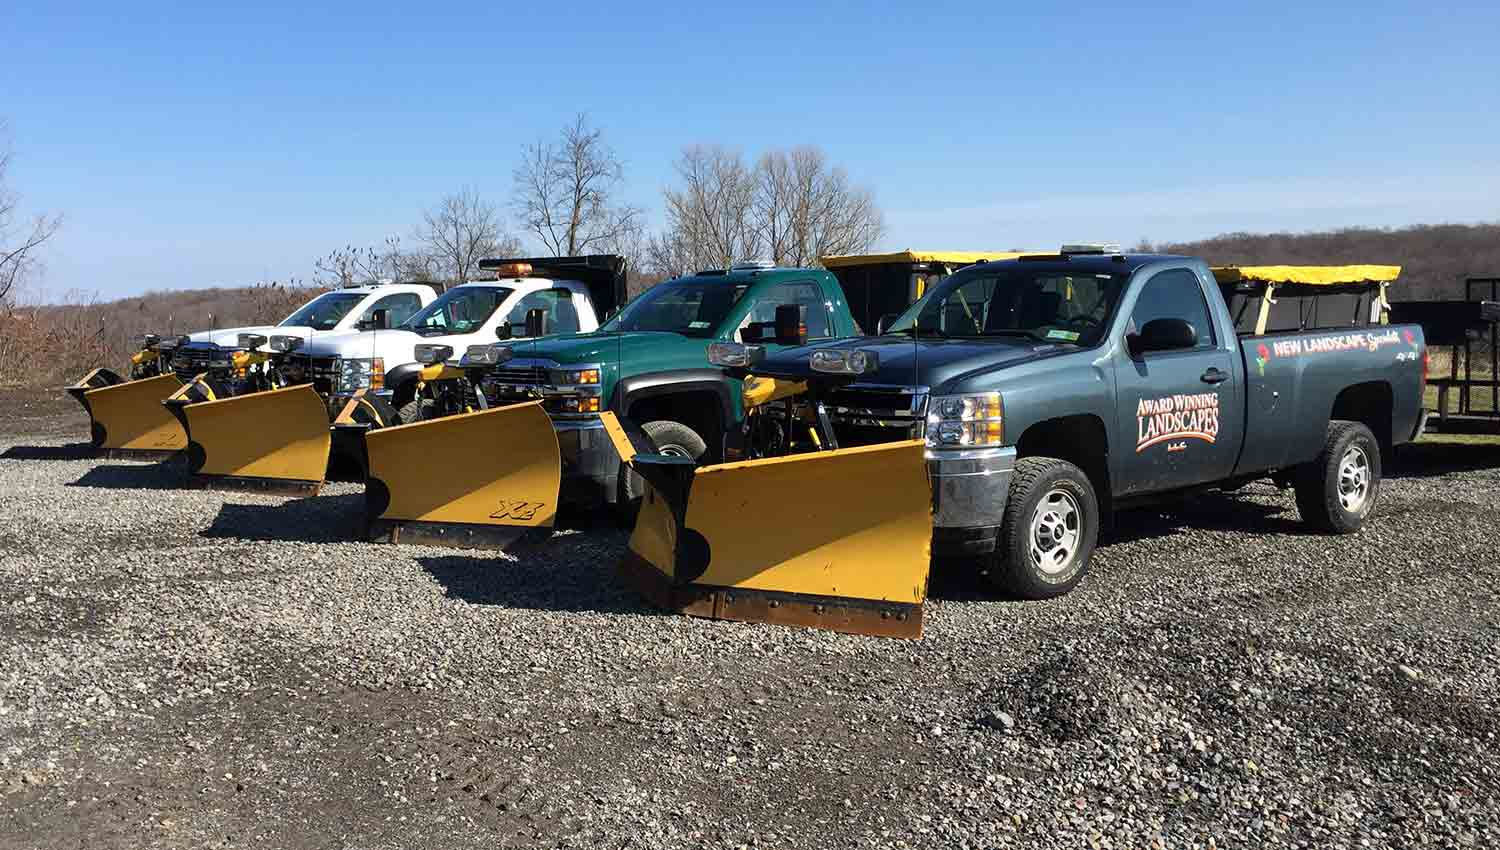 The fleet of snow removal vehicles from Award Winning Landscapes